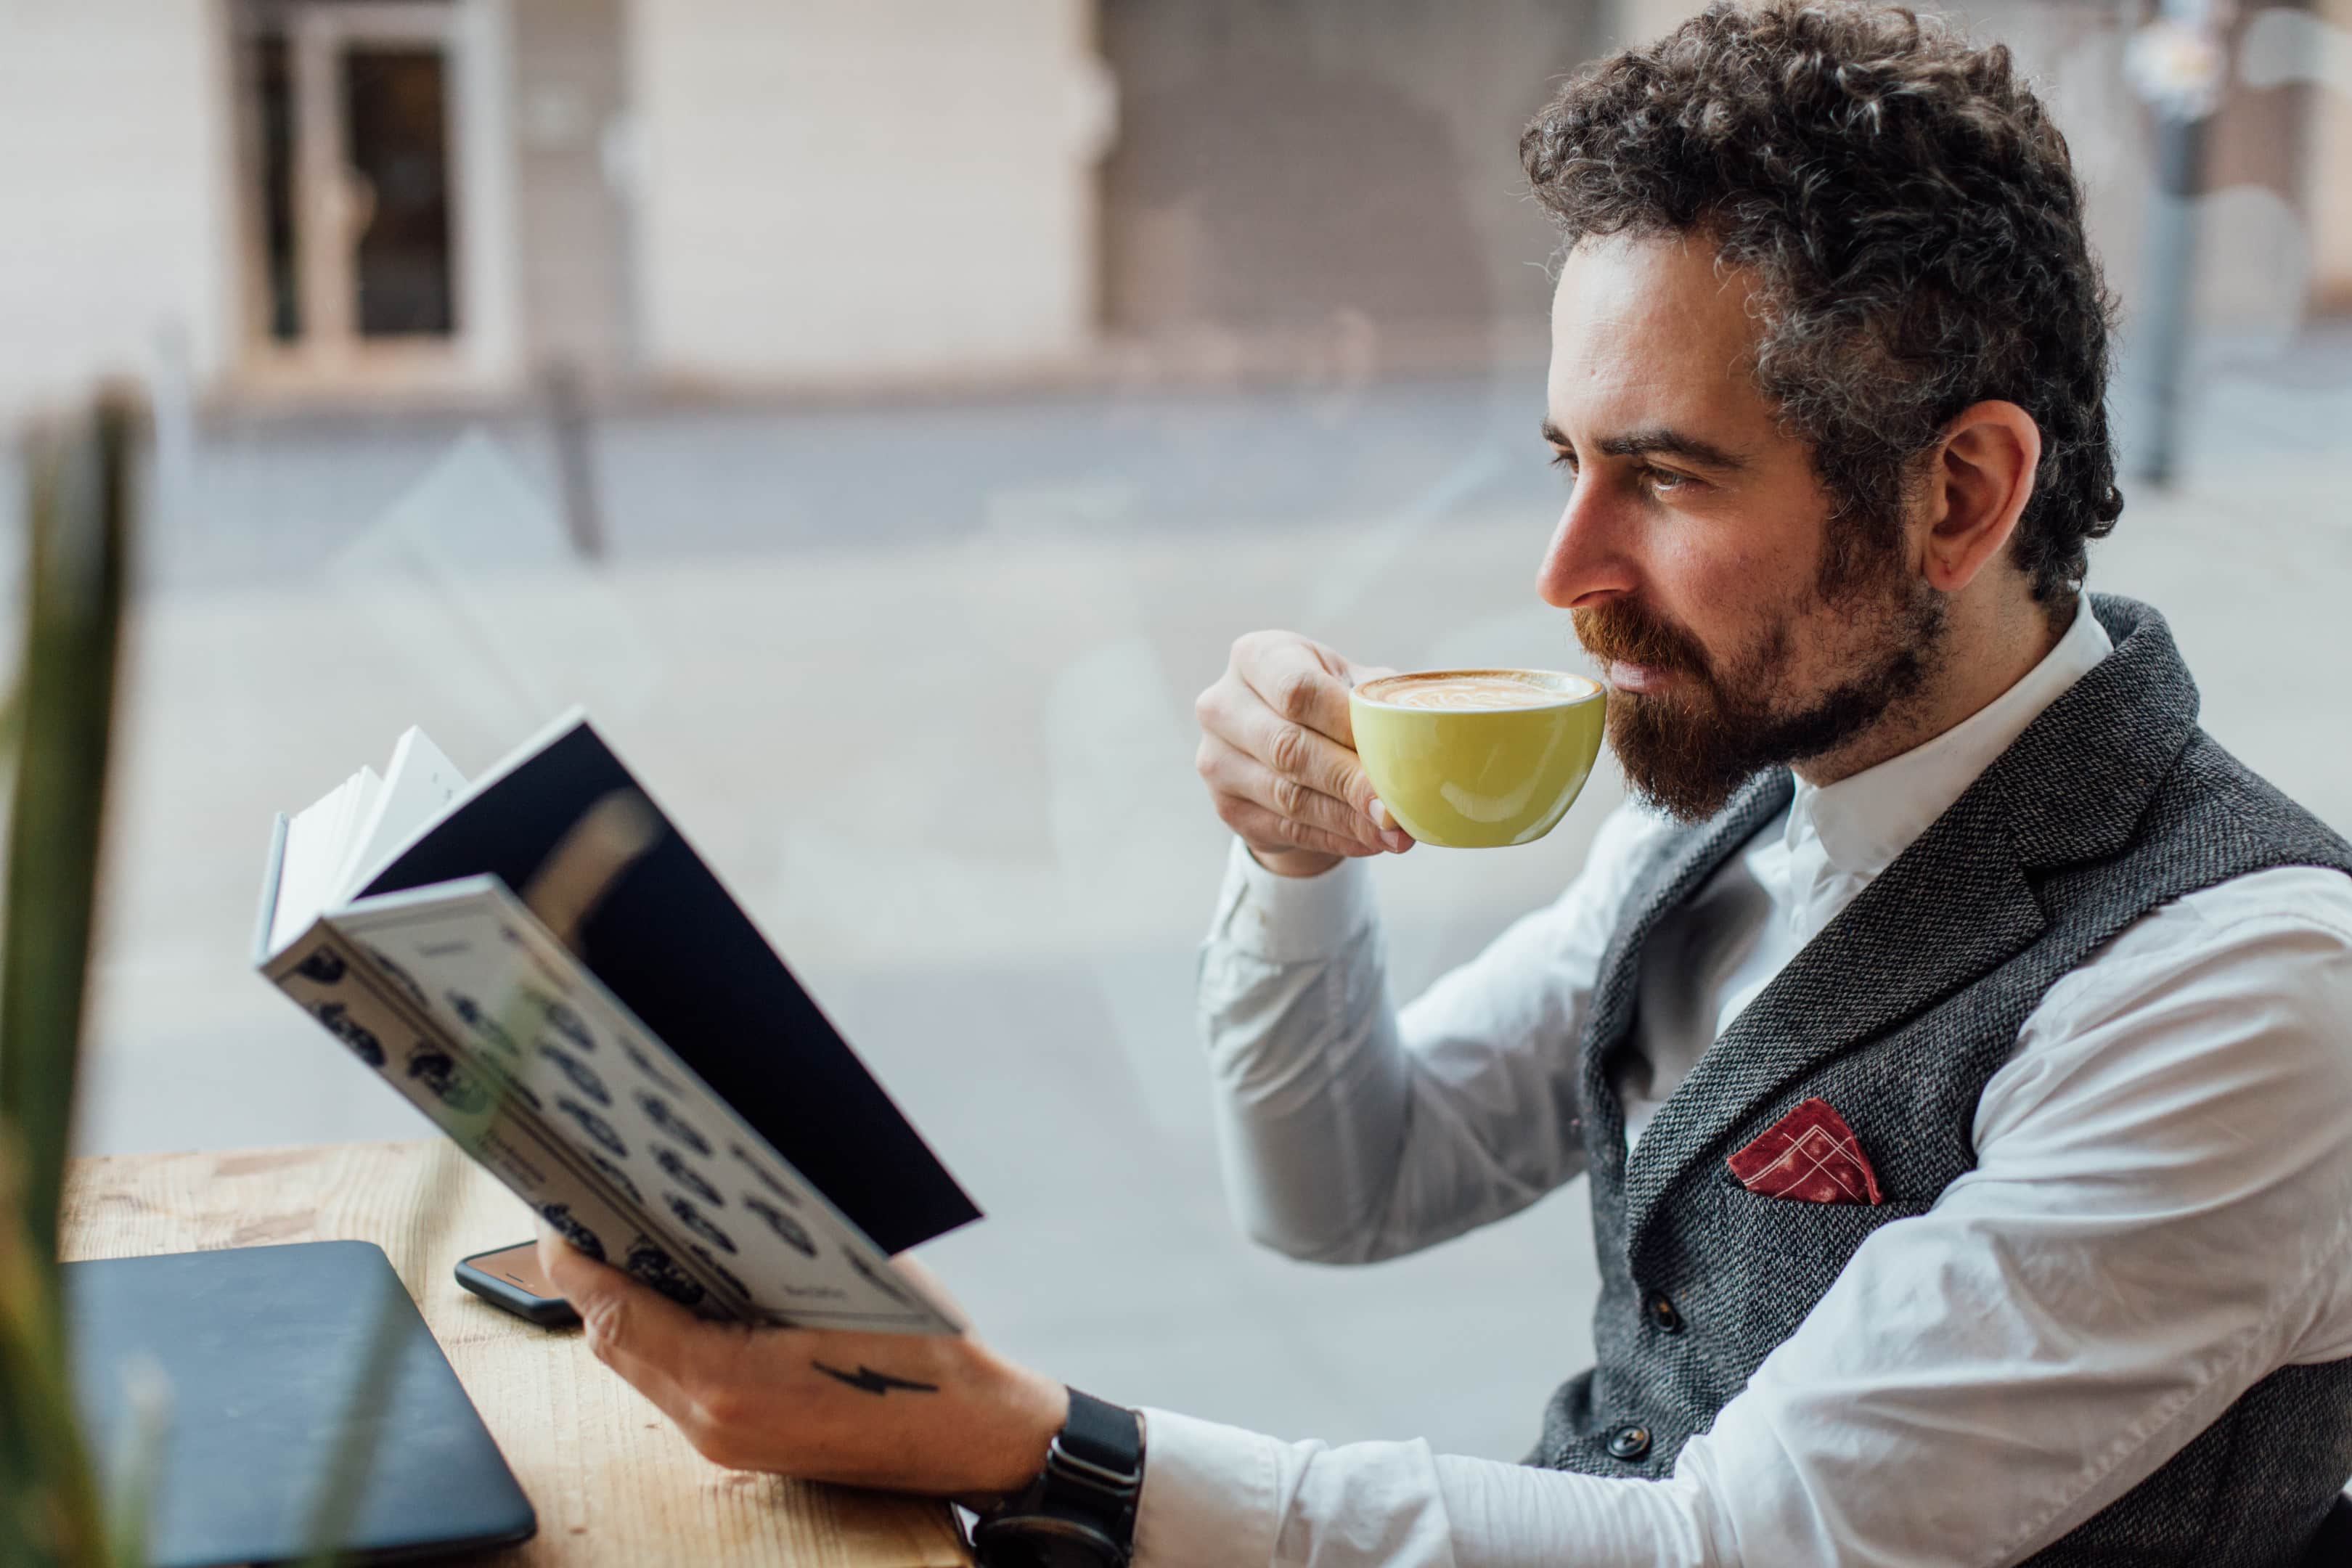 adult middle aged man sips coffee while reading interesting book